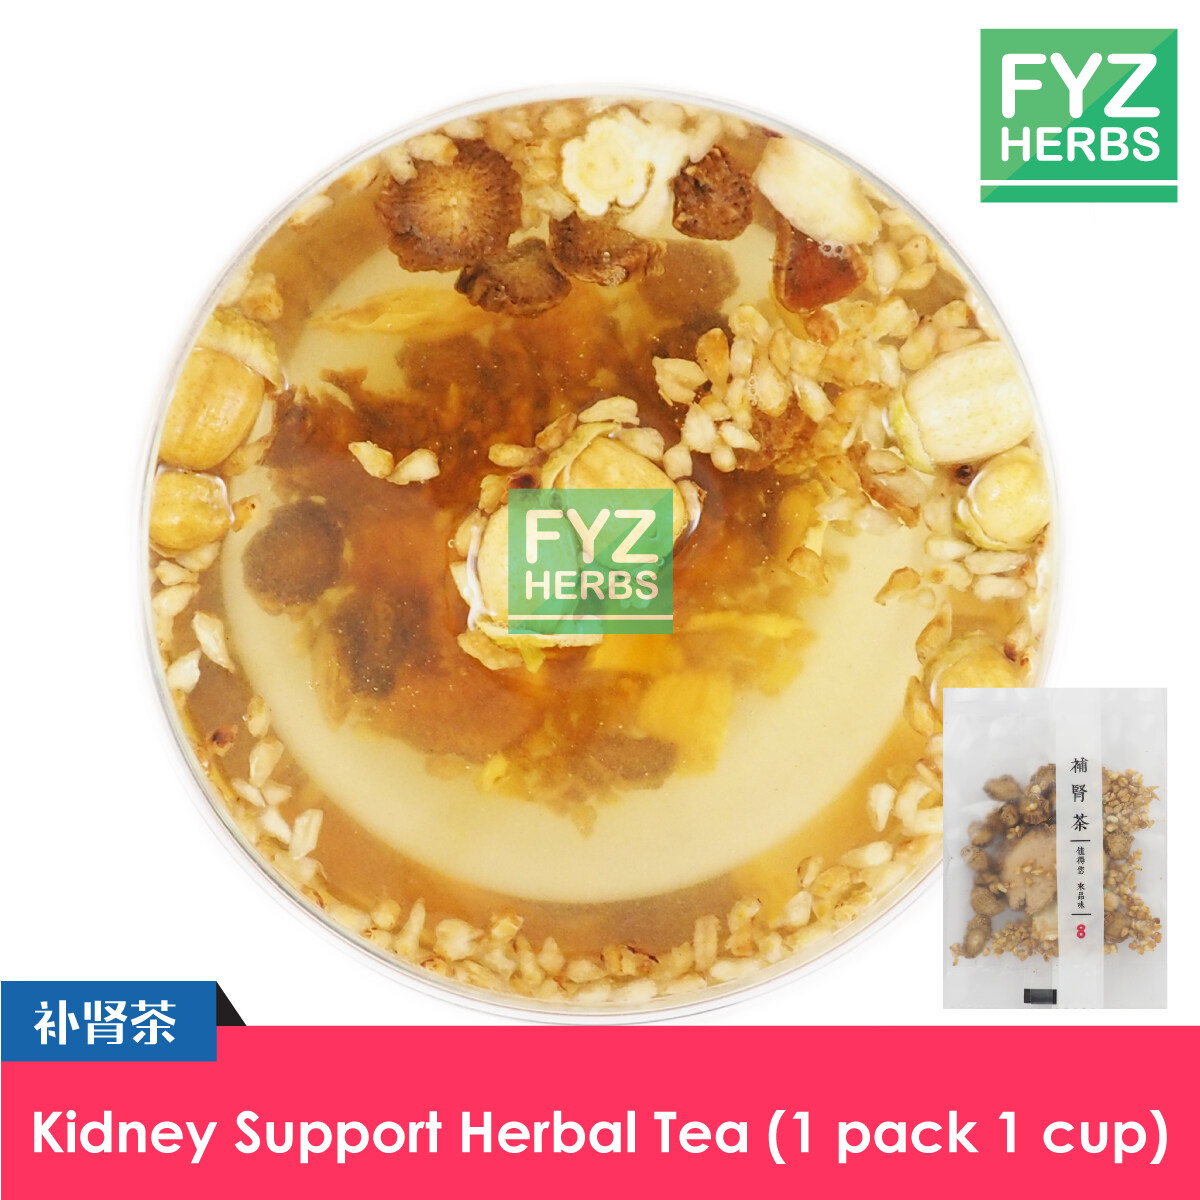 Kidney Support Herbal Tea (1 pack 1 cup) 补肾茶 (1包1杯)